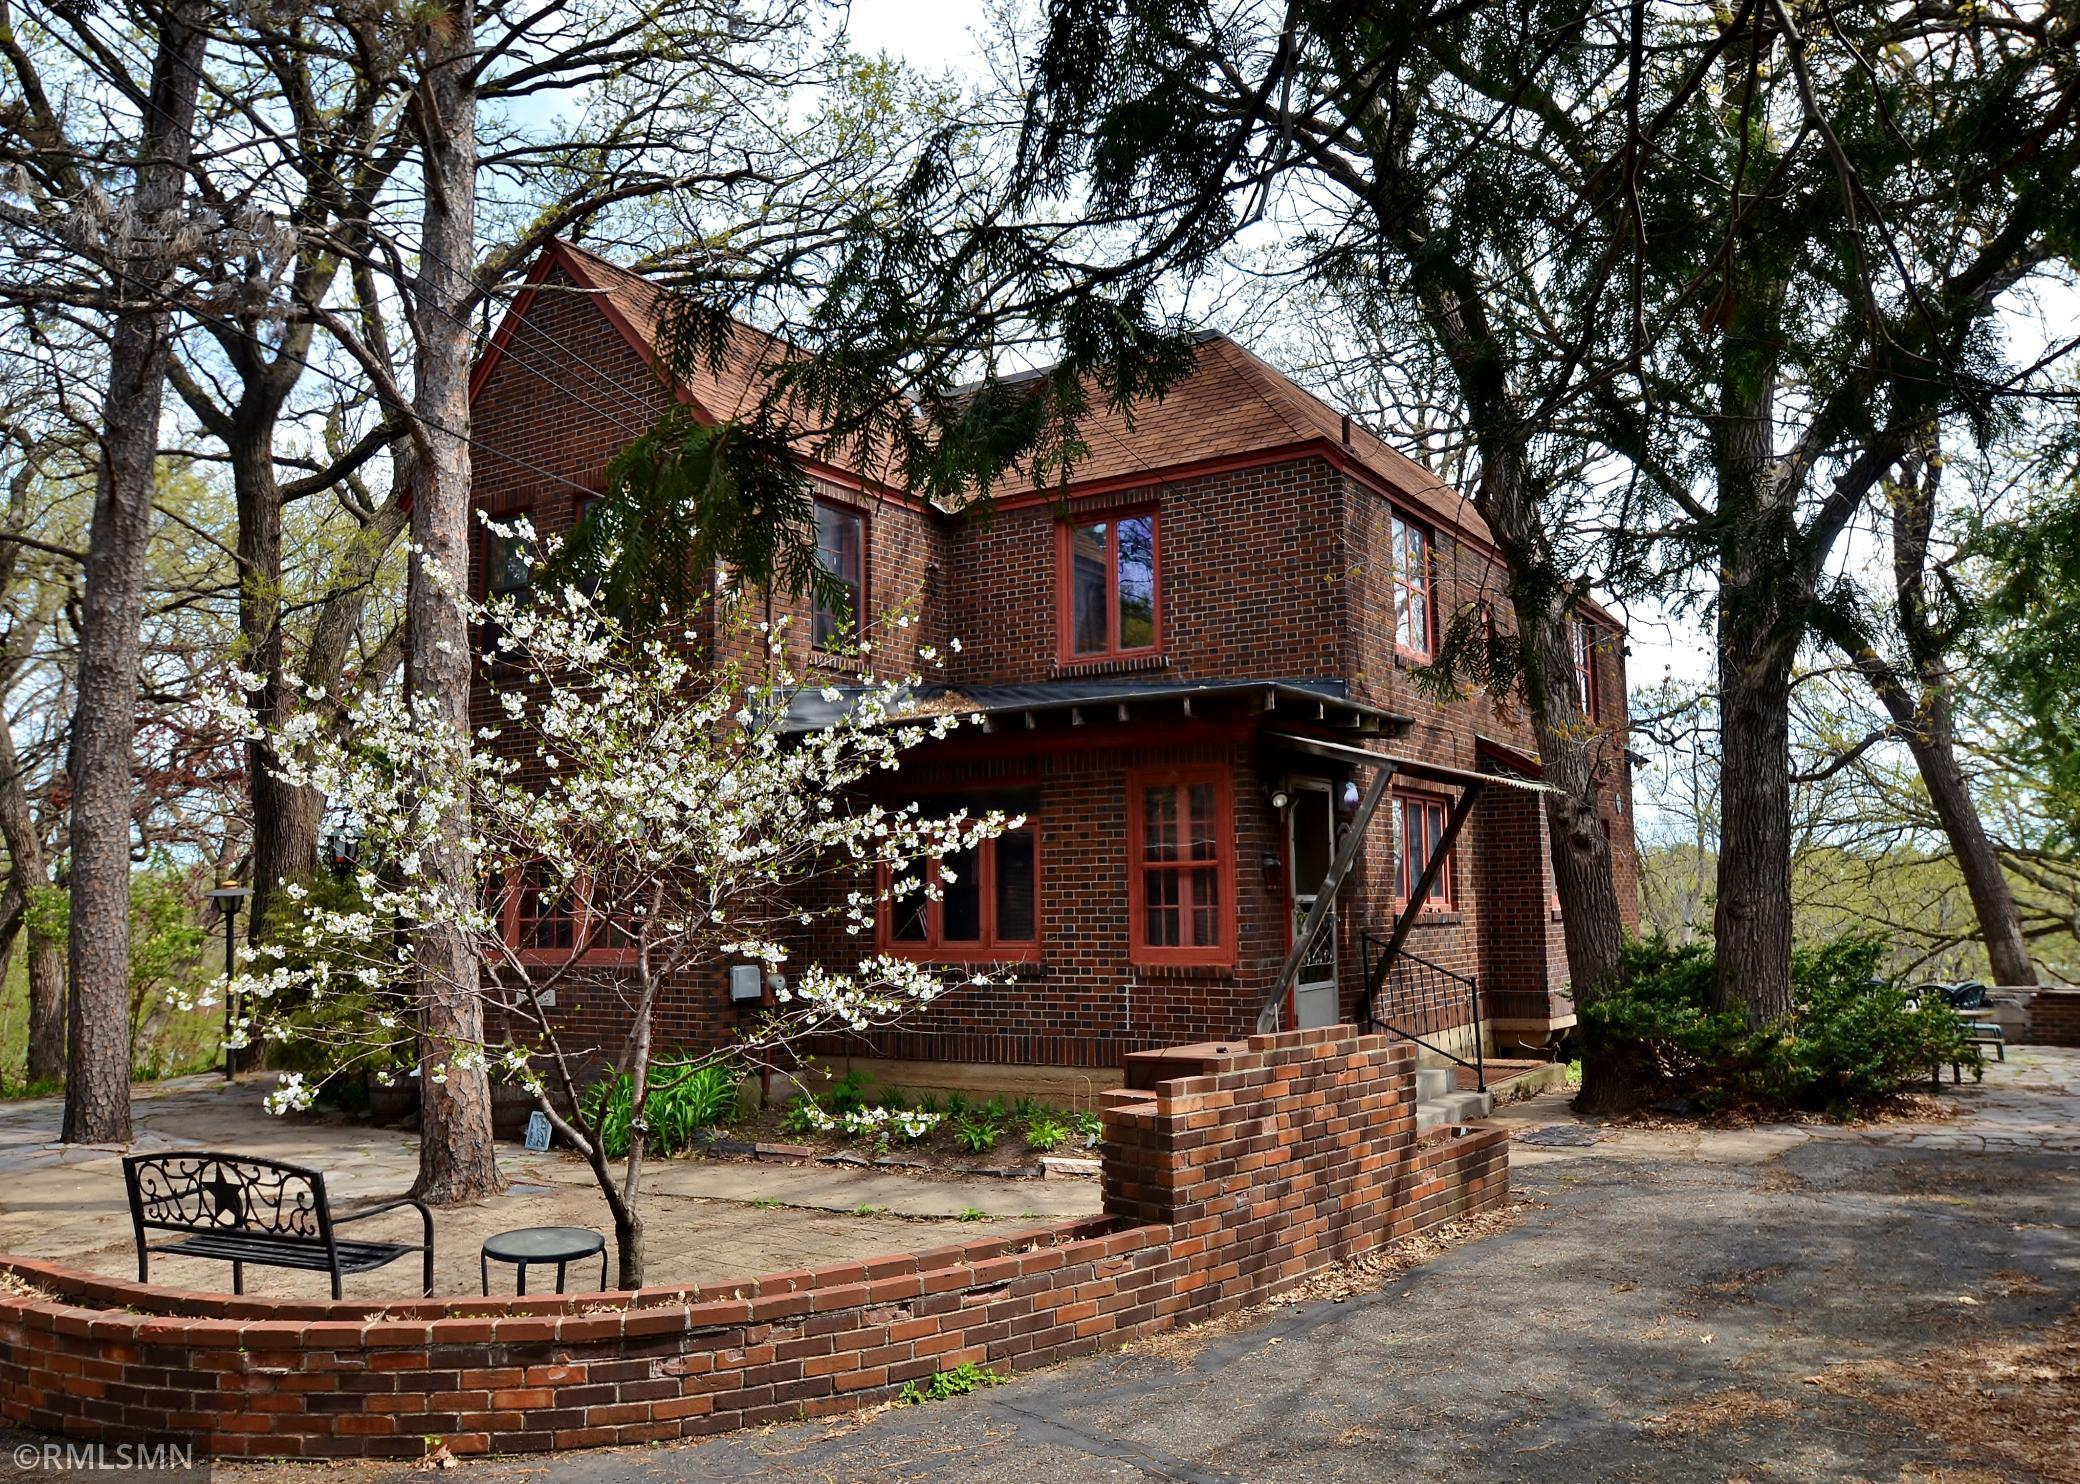 This amazing two story brown-brick English Tudor style home overlooks over 100' of Mississippi River frontage. It has had just one owner for last 60 years and needs a new owner to update it to modern standards. It has fantastic views of the Mississippi from several rooms and a huge two story living room with cathedral vaults and a Juliet balcony overlooking from the second floor. Wonderful stone courtyard and patio for outdoor entertaining. There is approx. 3/4 of an acre, level area by the river w/a granite fireplace, storage shed and covered picnic shelter. On the acre above between the house and street, there are fruit trees garden, blacksmiths forge and the remains of a lighted bocce court. It needs work but the location and style will make this a rewarding labor of love for someone. Sellers are including a $10,000 roofing allowance.